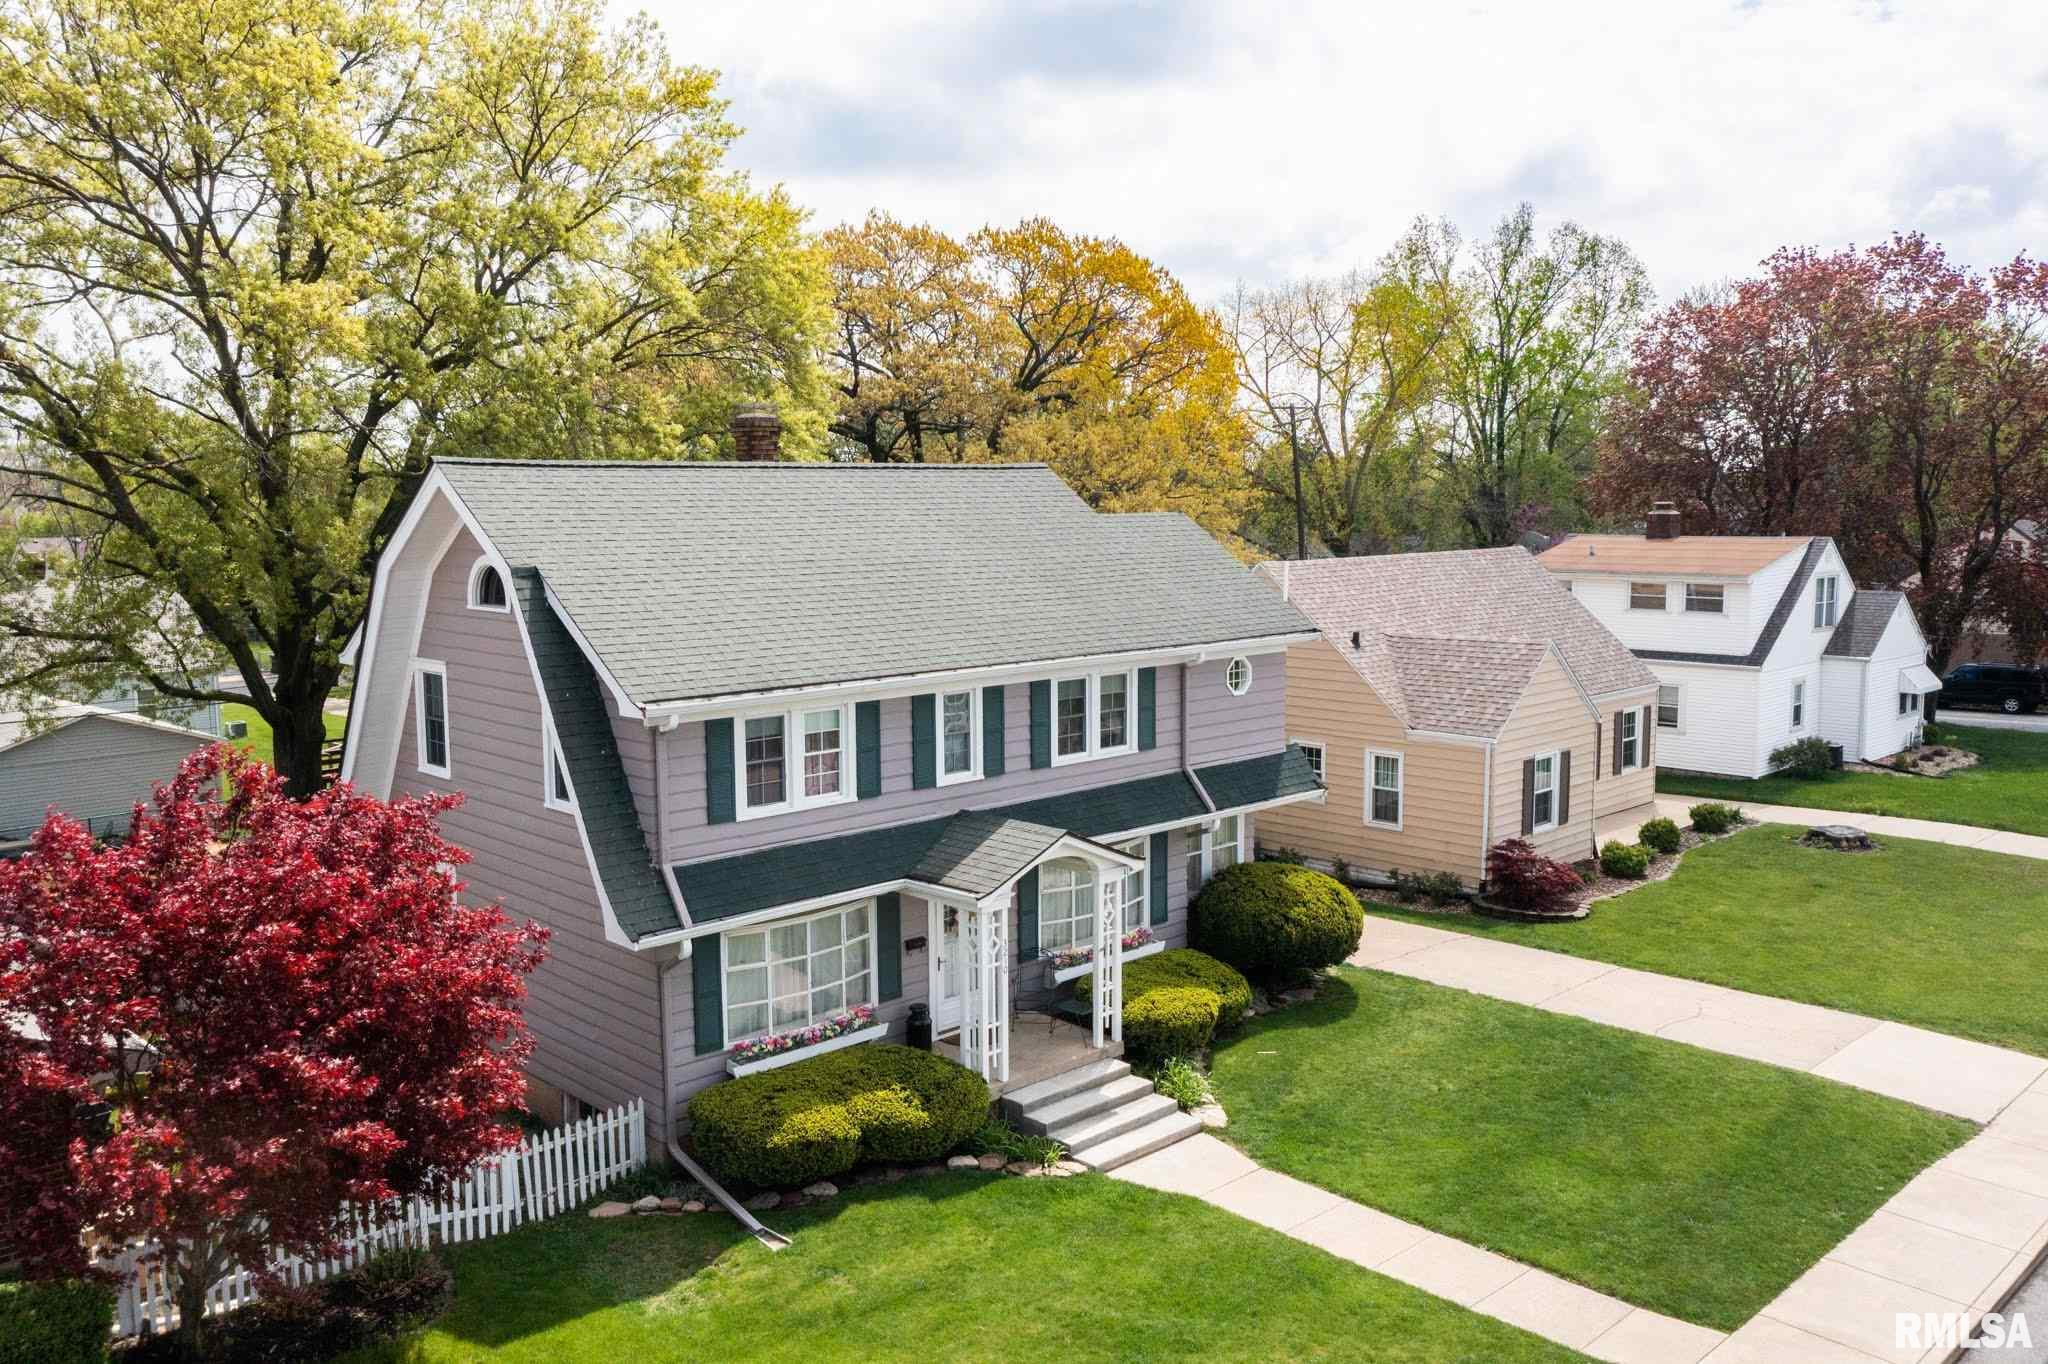 3210 N SHERWOOD Property Photo - Peoria, IL real estate listing